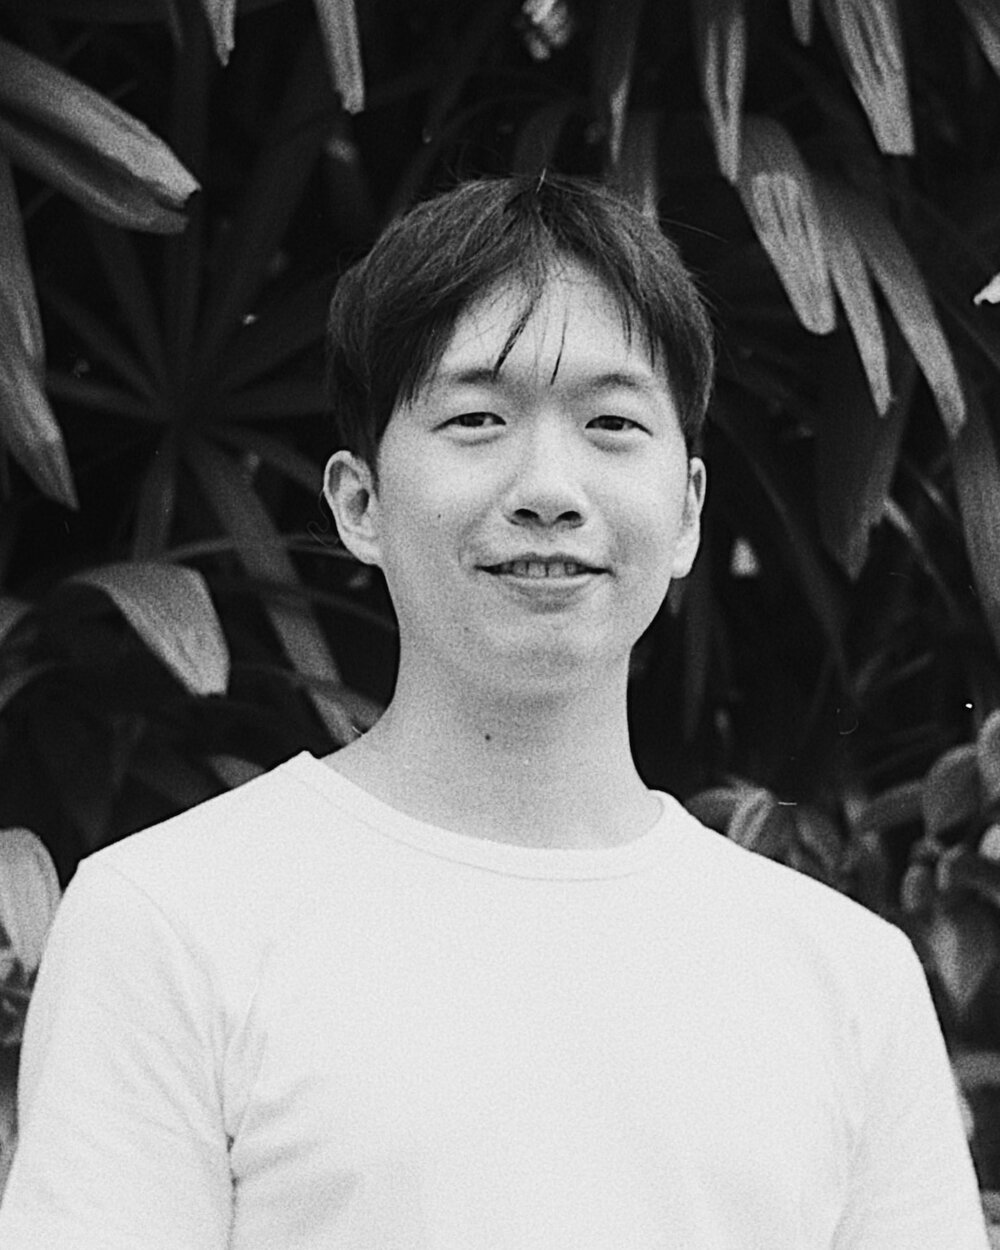 Station Director / Daryl Qilin Yam  is a writer of prose and poetry. He runs and manages Sing Lit Station's visual identity and all digital / social media platforms, as well as a few special programmes and projects.